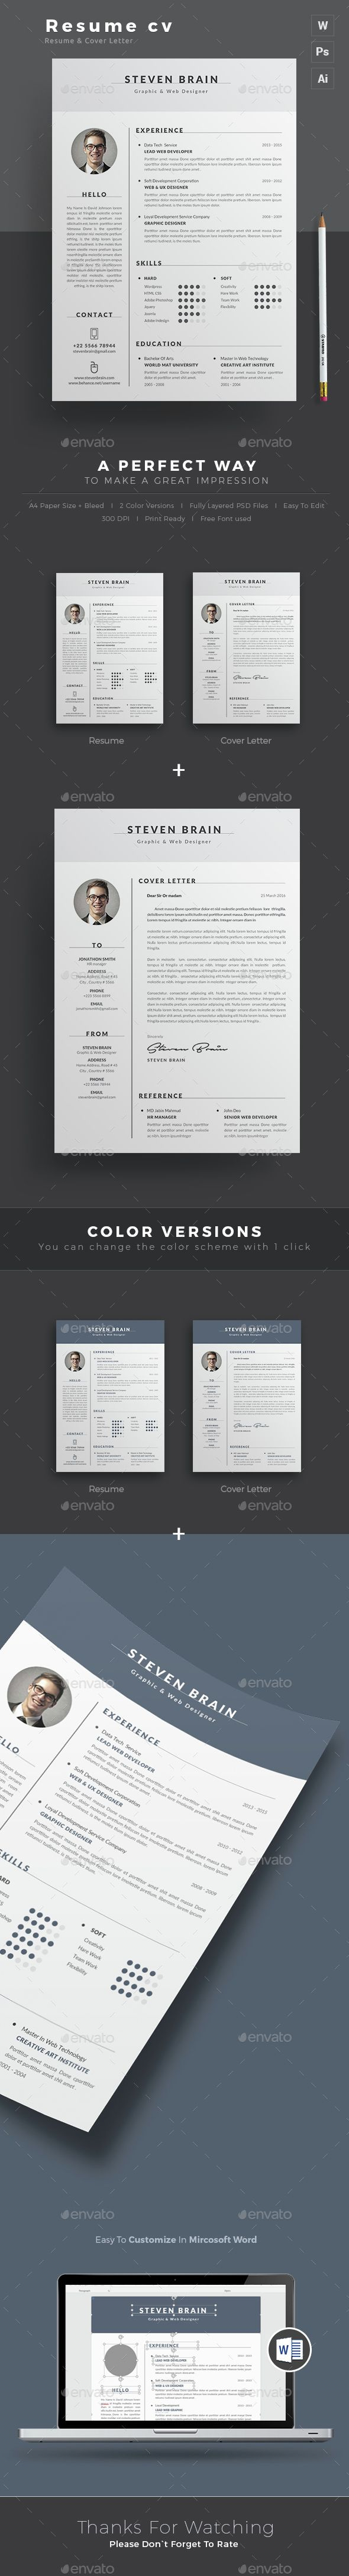 Check Media Variety for creative Psd Graphics Resources | Cv ...